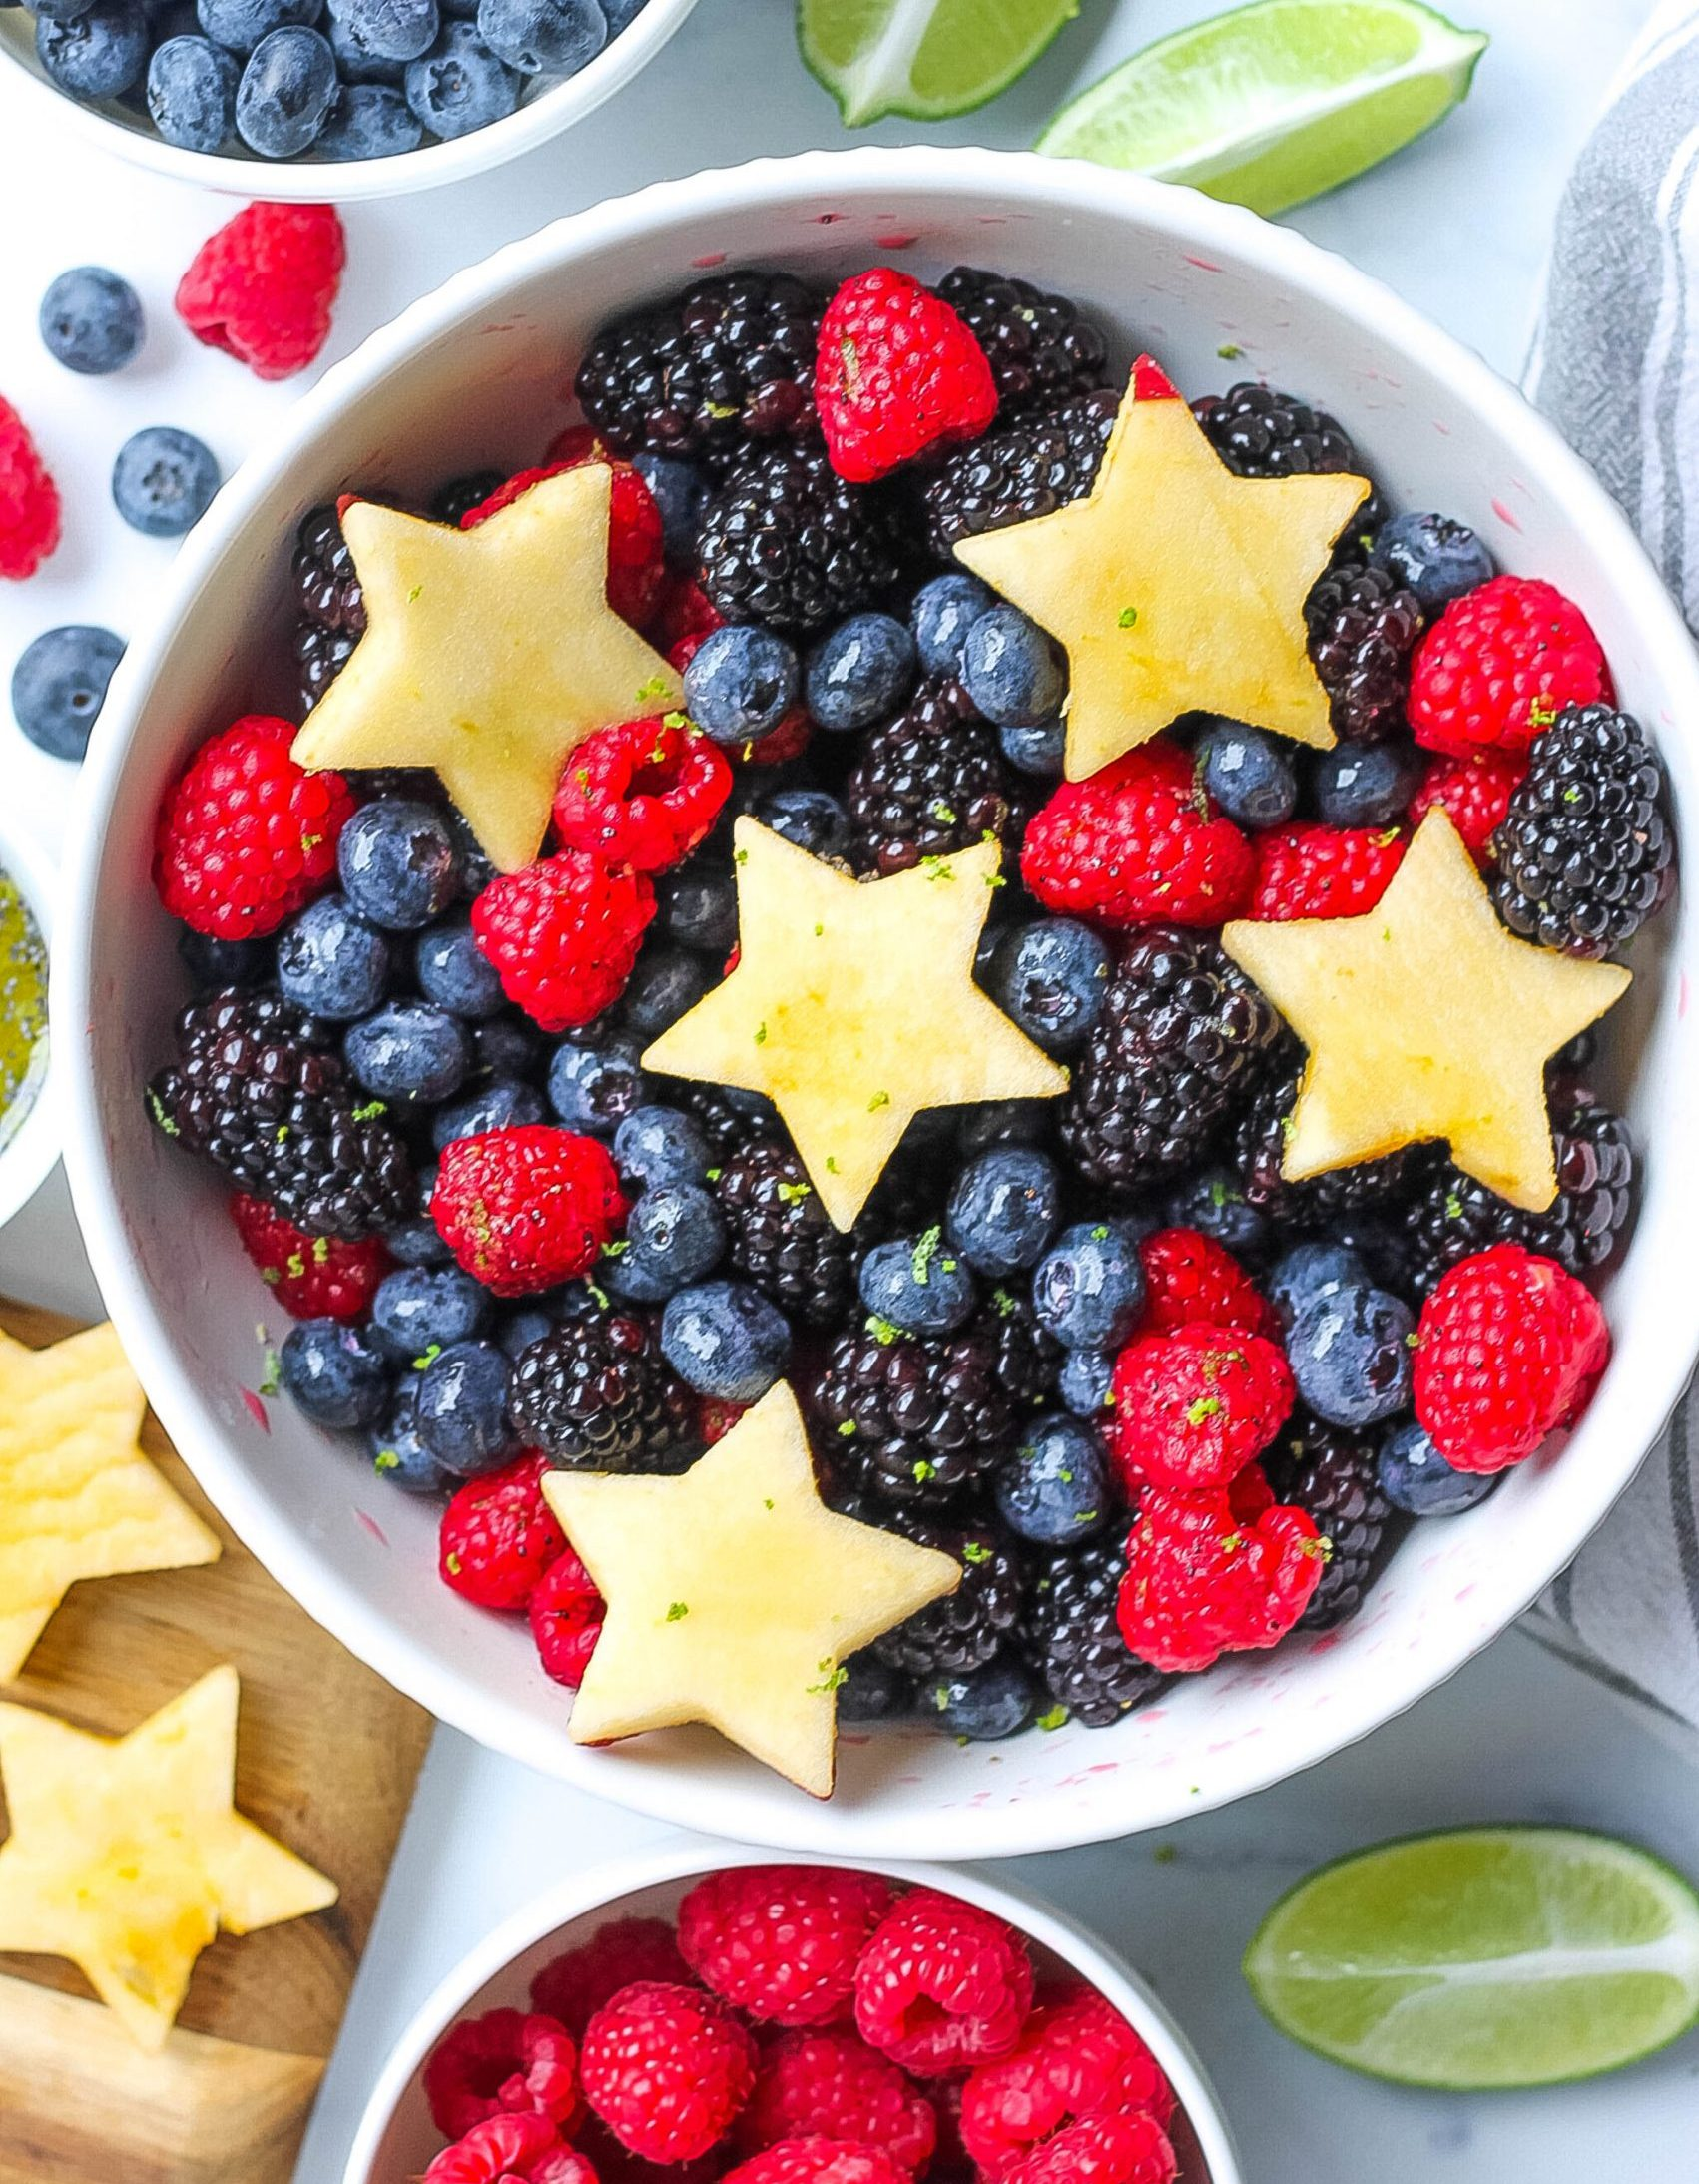 Fresh fruit salad with berries